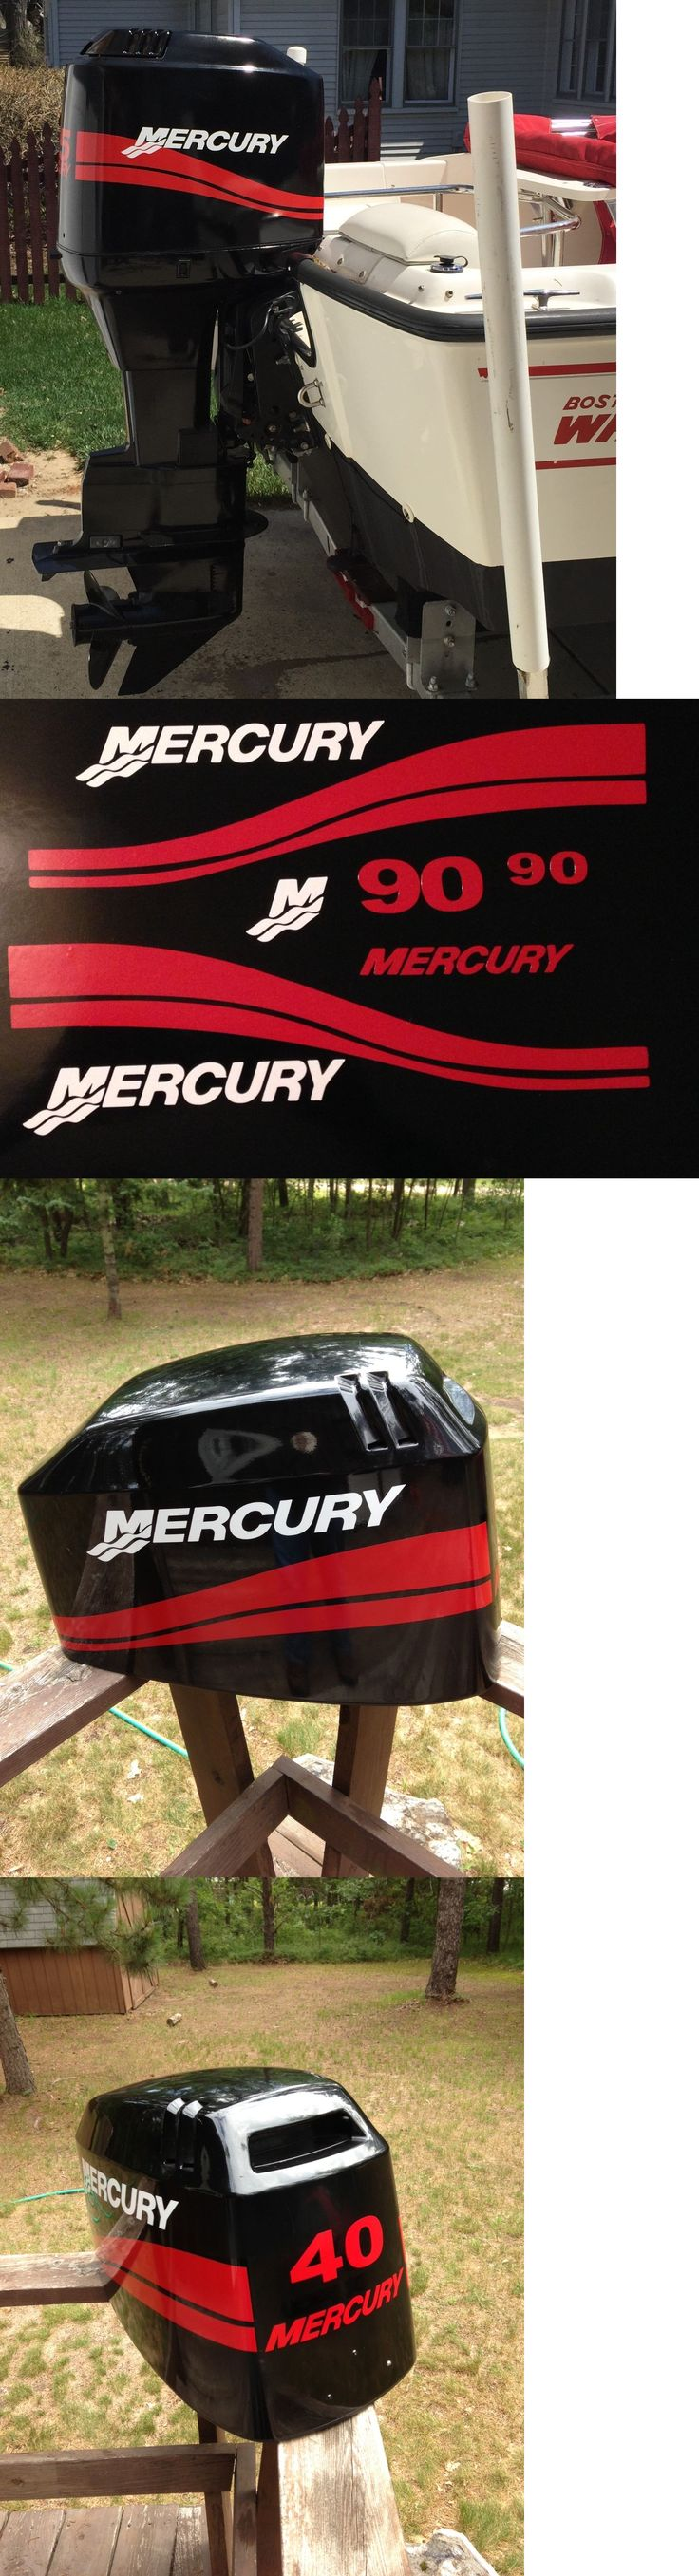 Decals Stickers and Patches 179988: Red Mercury Outboard 115 - 250 Hp Marine Vinyl Decal Set BUY IT NOW ONLY: $54.99